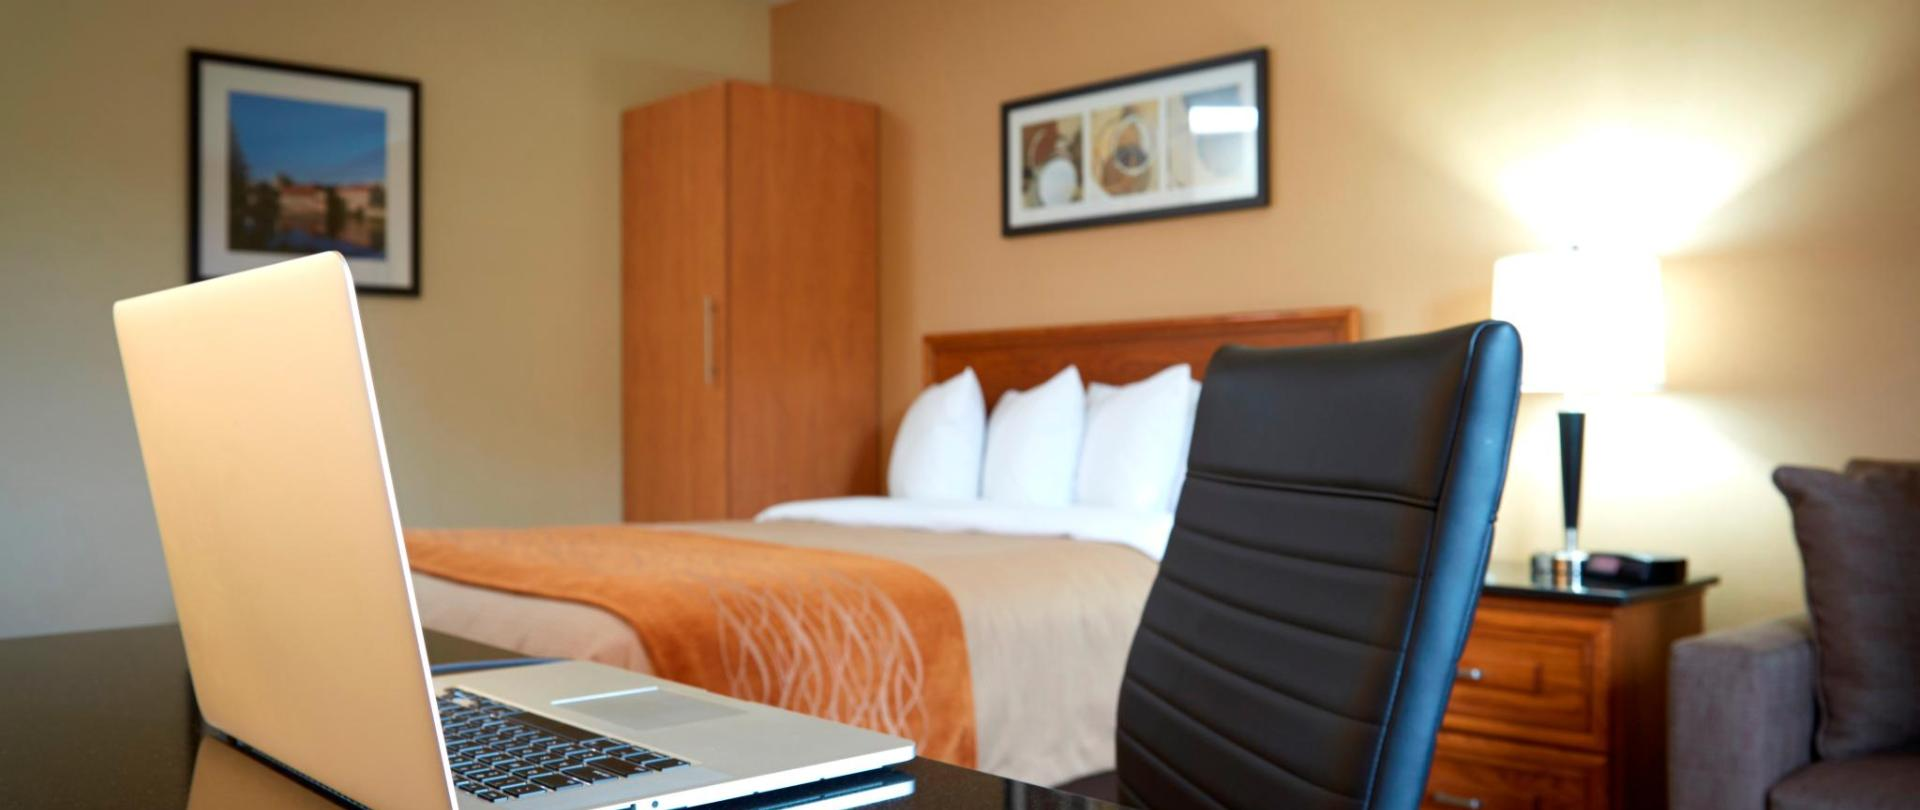 Spacious Pillowtop Guestroom for Your Business Needs.jpg